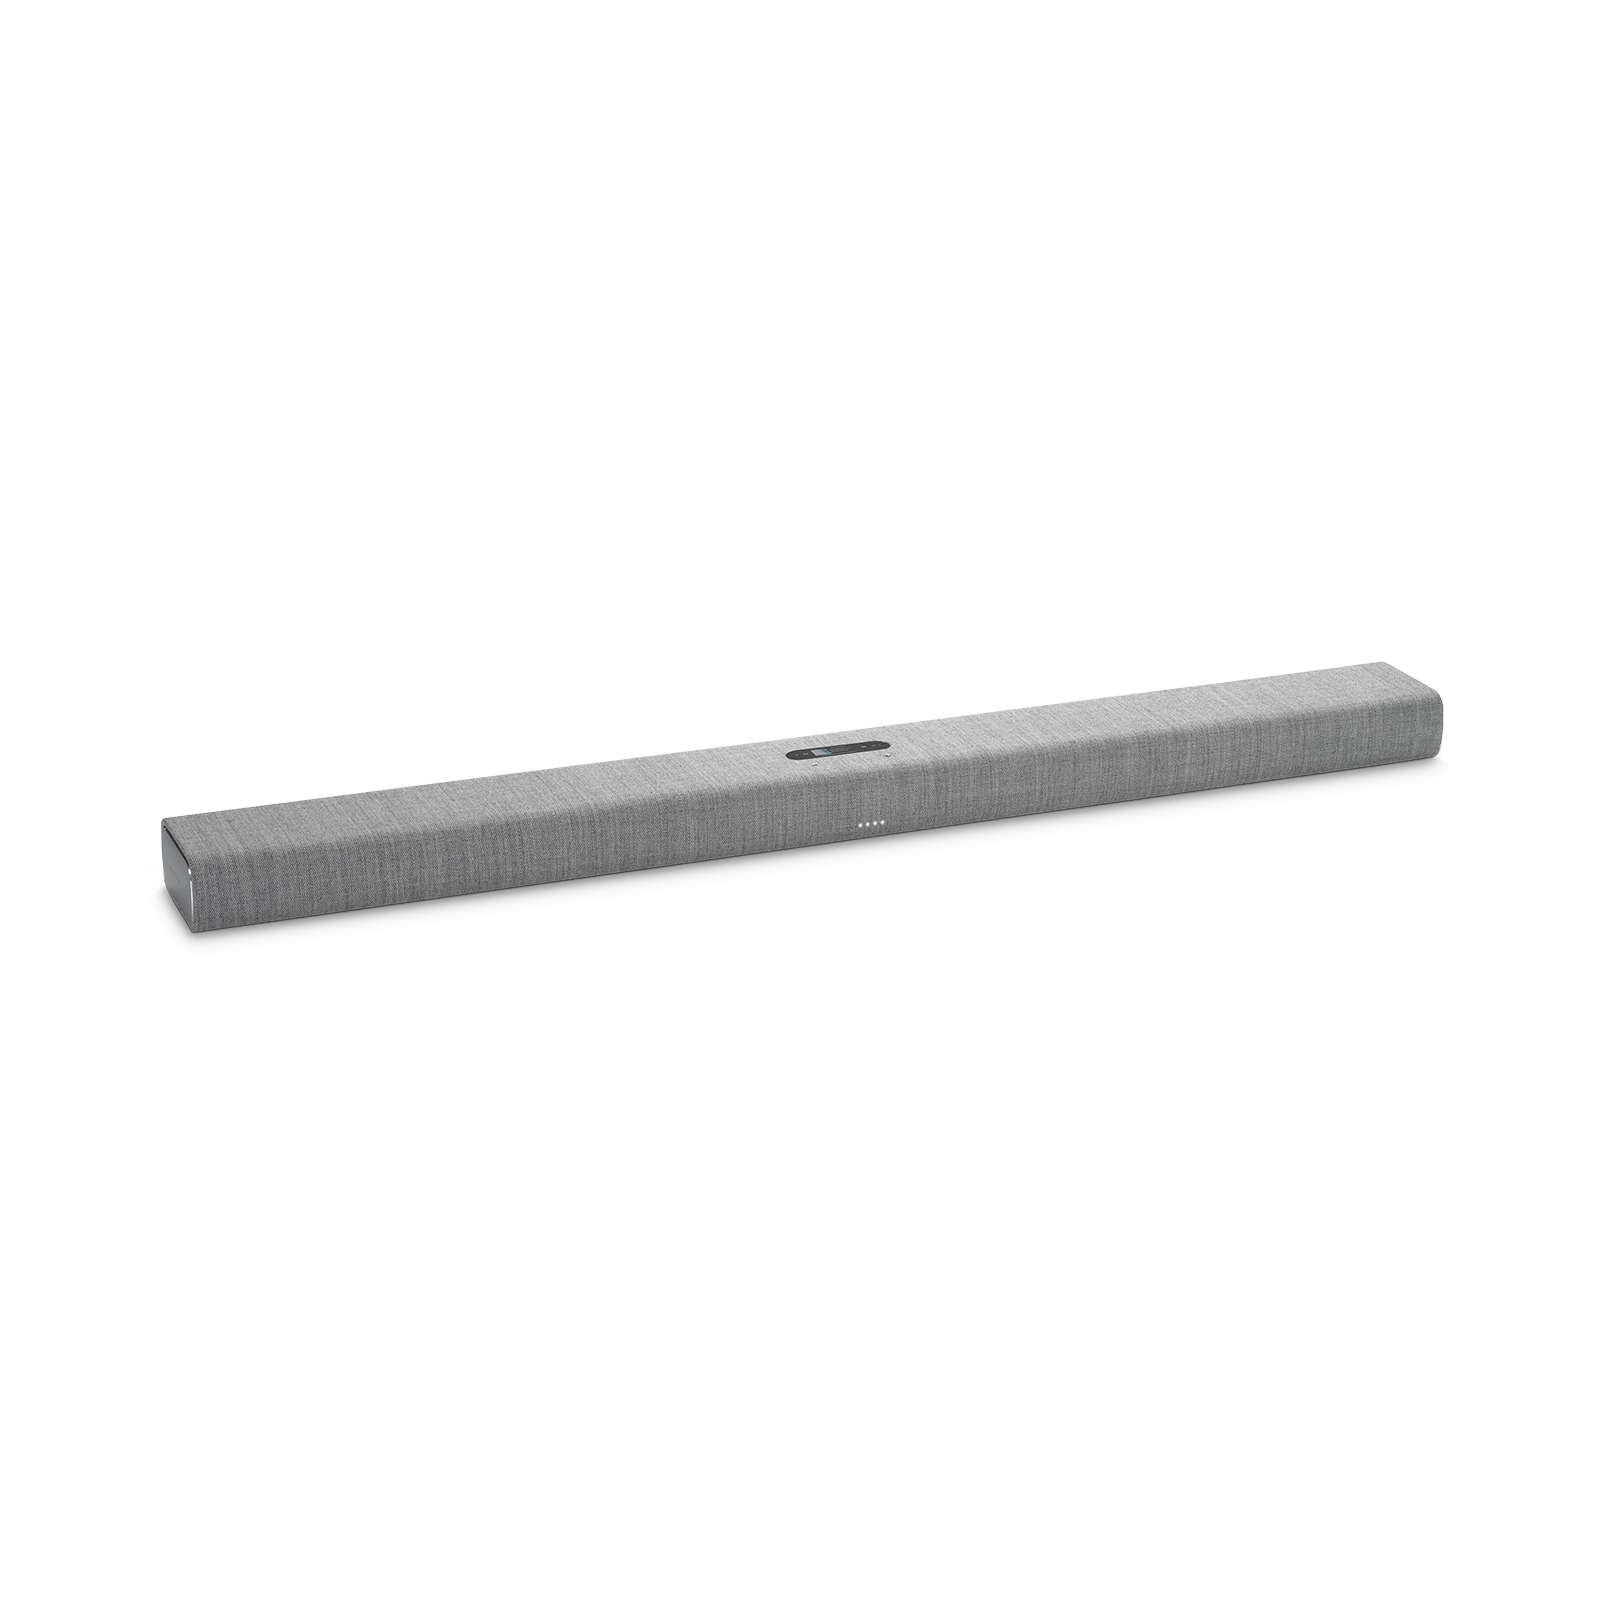 Harman Kardon Citation Bar - Grey - The smartest soundbar for movies and music - Hero